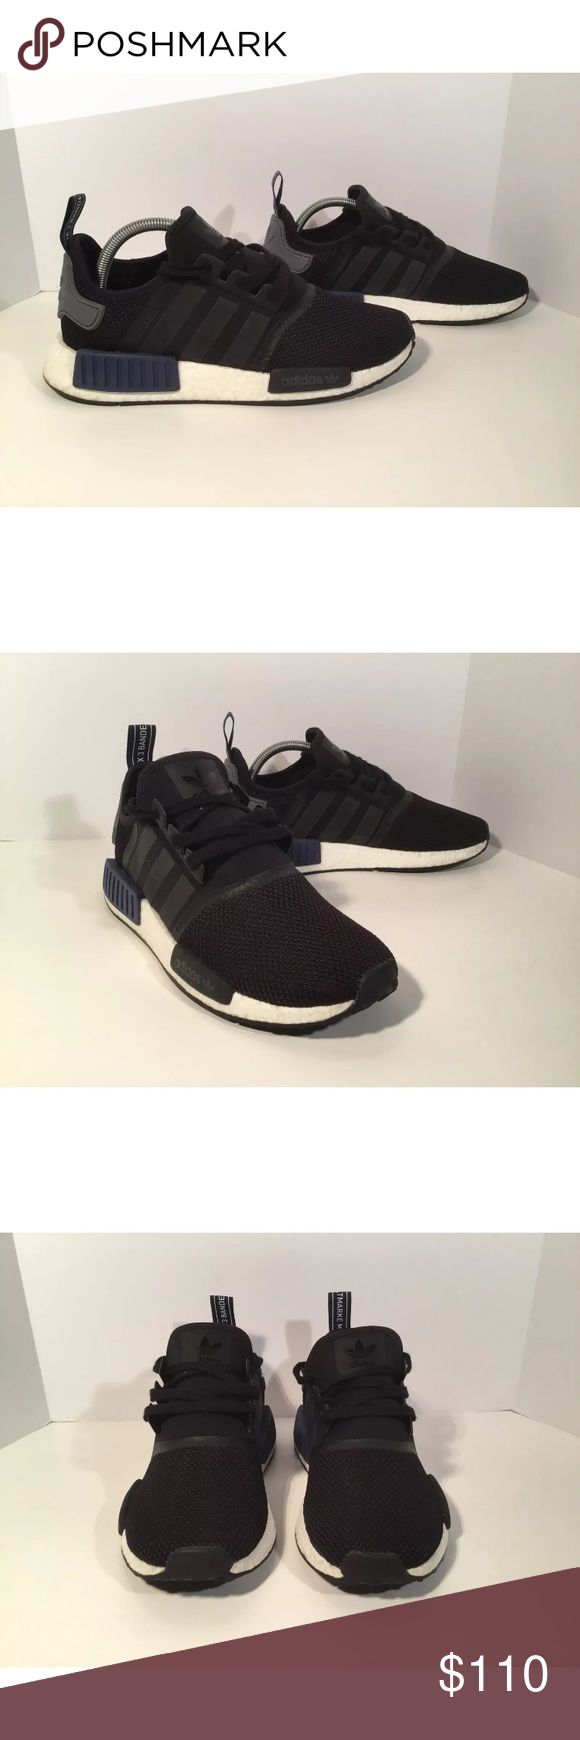 Adidas NMD R1 Sports Heritage Item details:   -adidas brand  -in great condition, basically brand new  -Men's Size 8.5  -boost technology  -NMD R1   All my shoes are 100% authentic. Buyer satisfaction is very important to me and I will always do my best to make sure you have a good experience when purchasing my items. I sell many hard to find, past season, and popular shoes at discount prices. If I have the box for the shoes, I always include it in the pictures. adidas Shoes Athletic Shoes